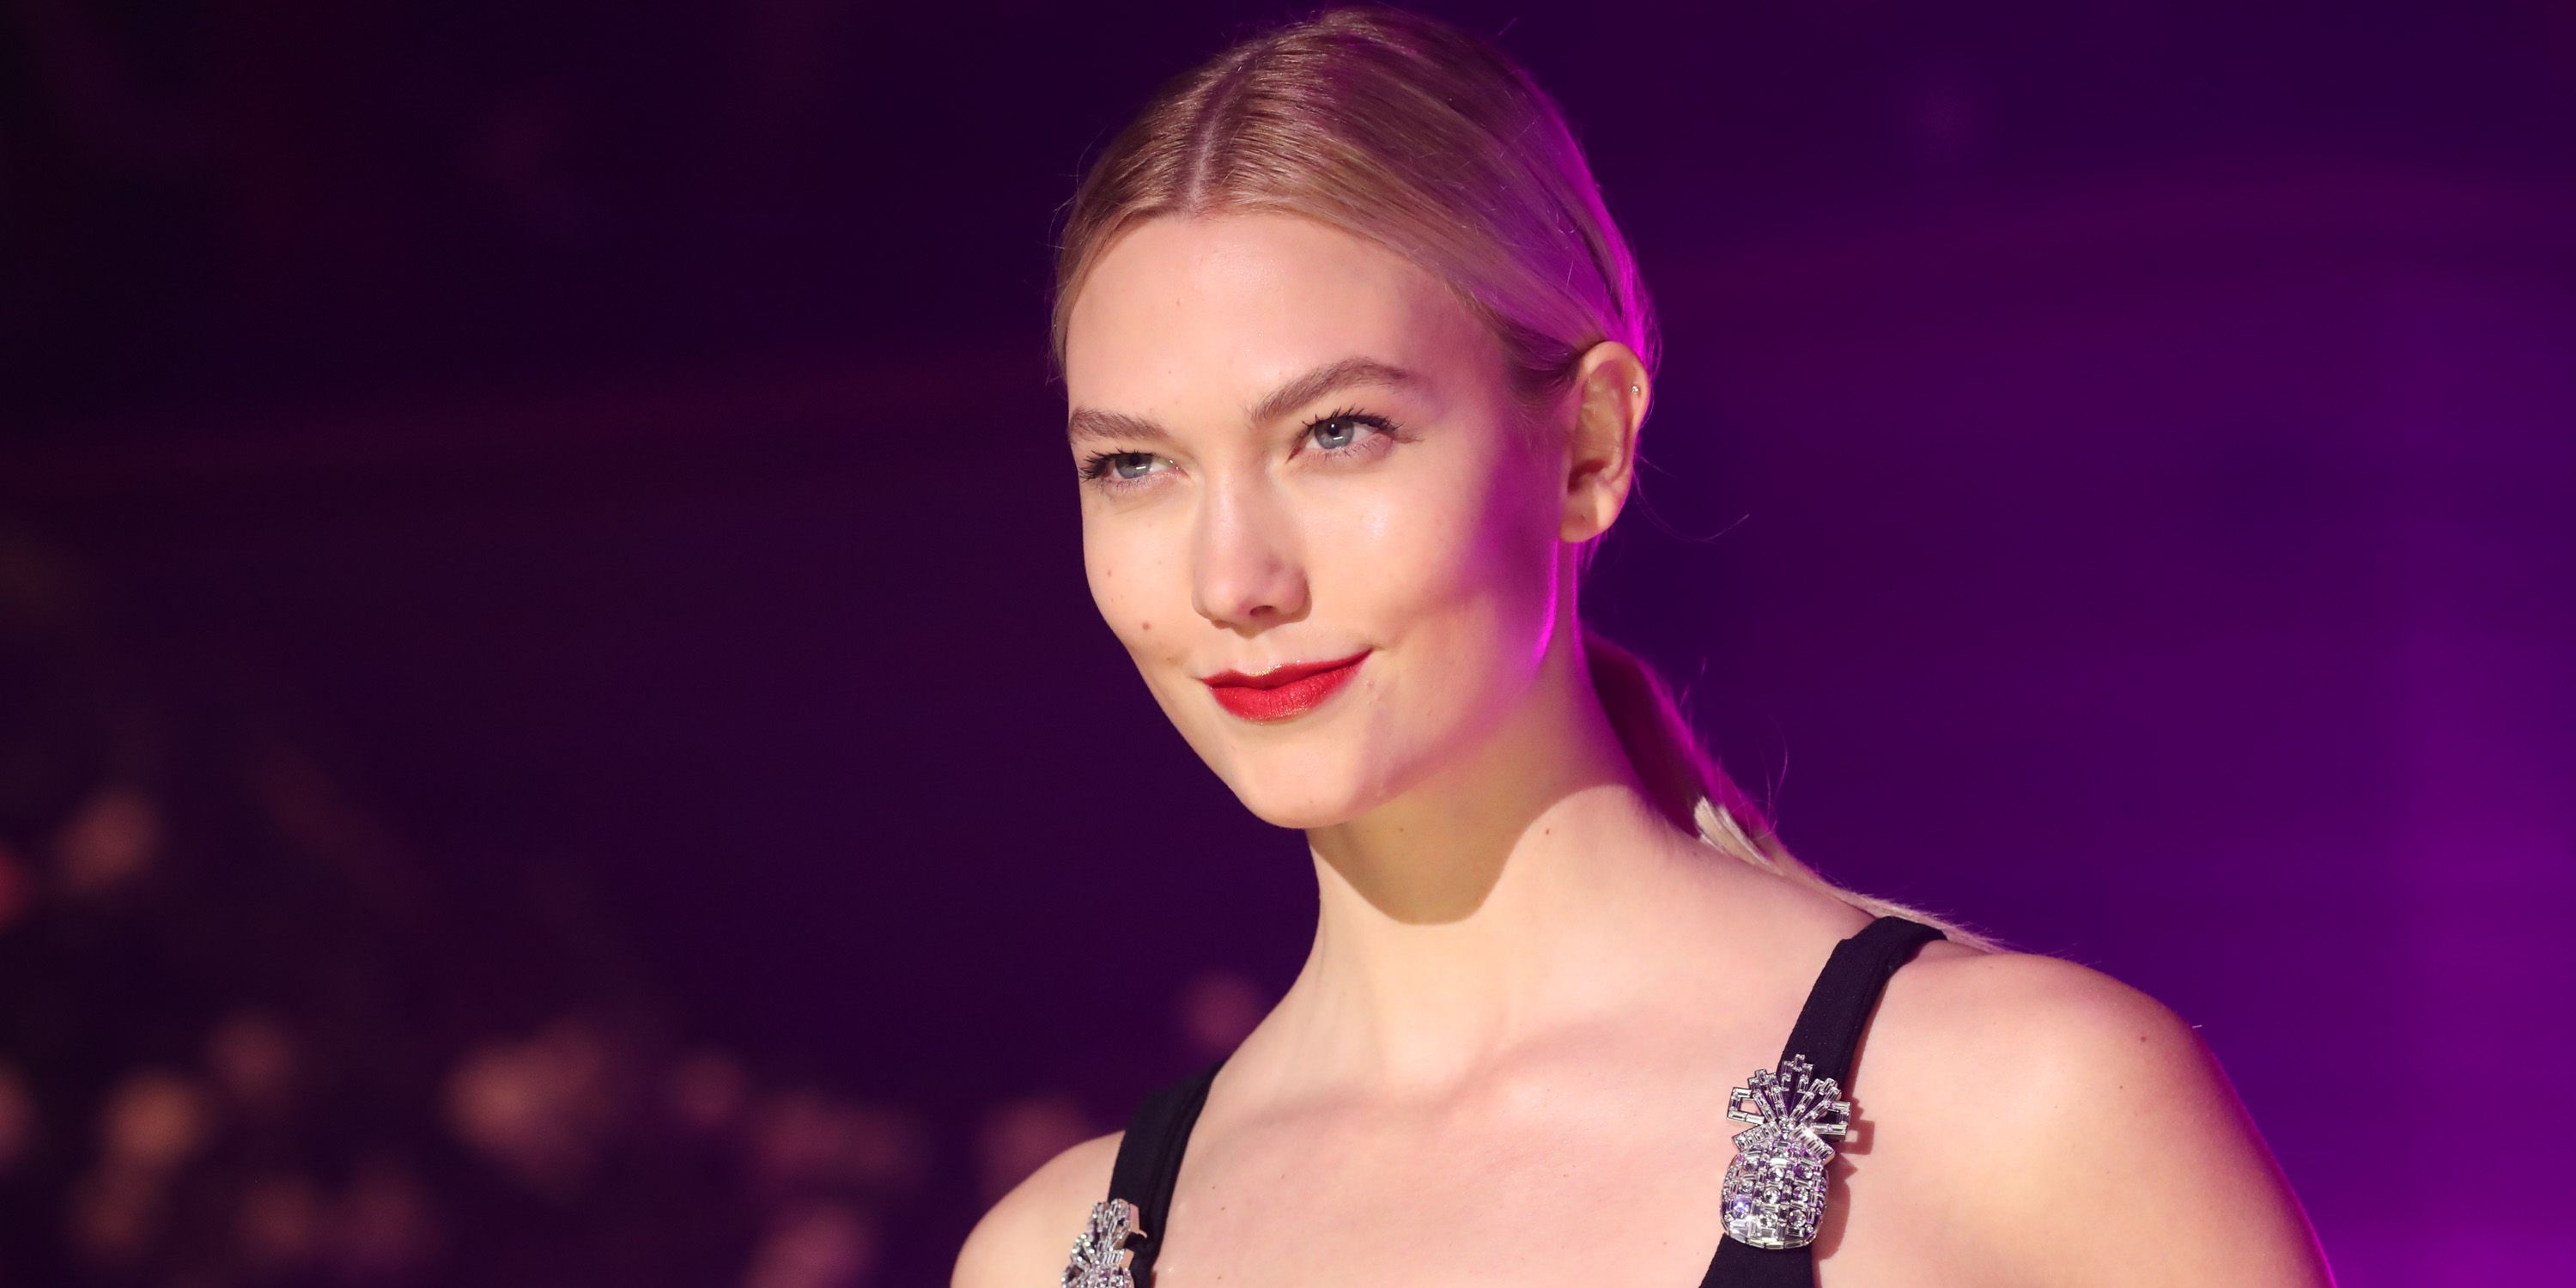 Why Karlie Kloss's Instagram is being spammed with rat emojis